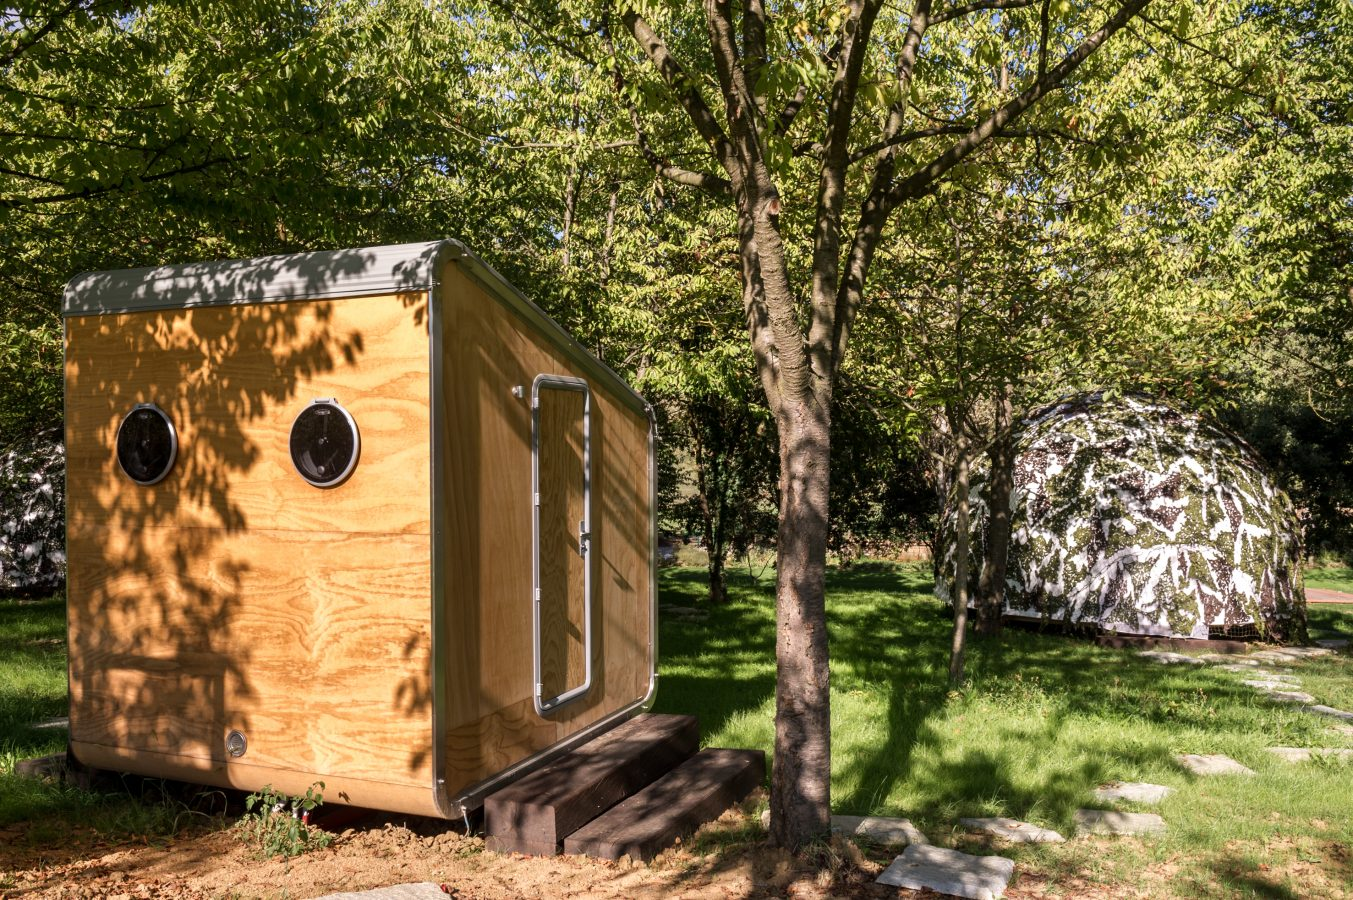 Glamping LeapNest toilet unit with camouflage tent